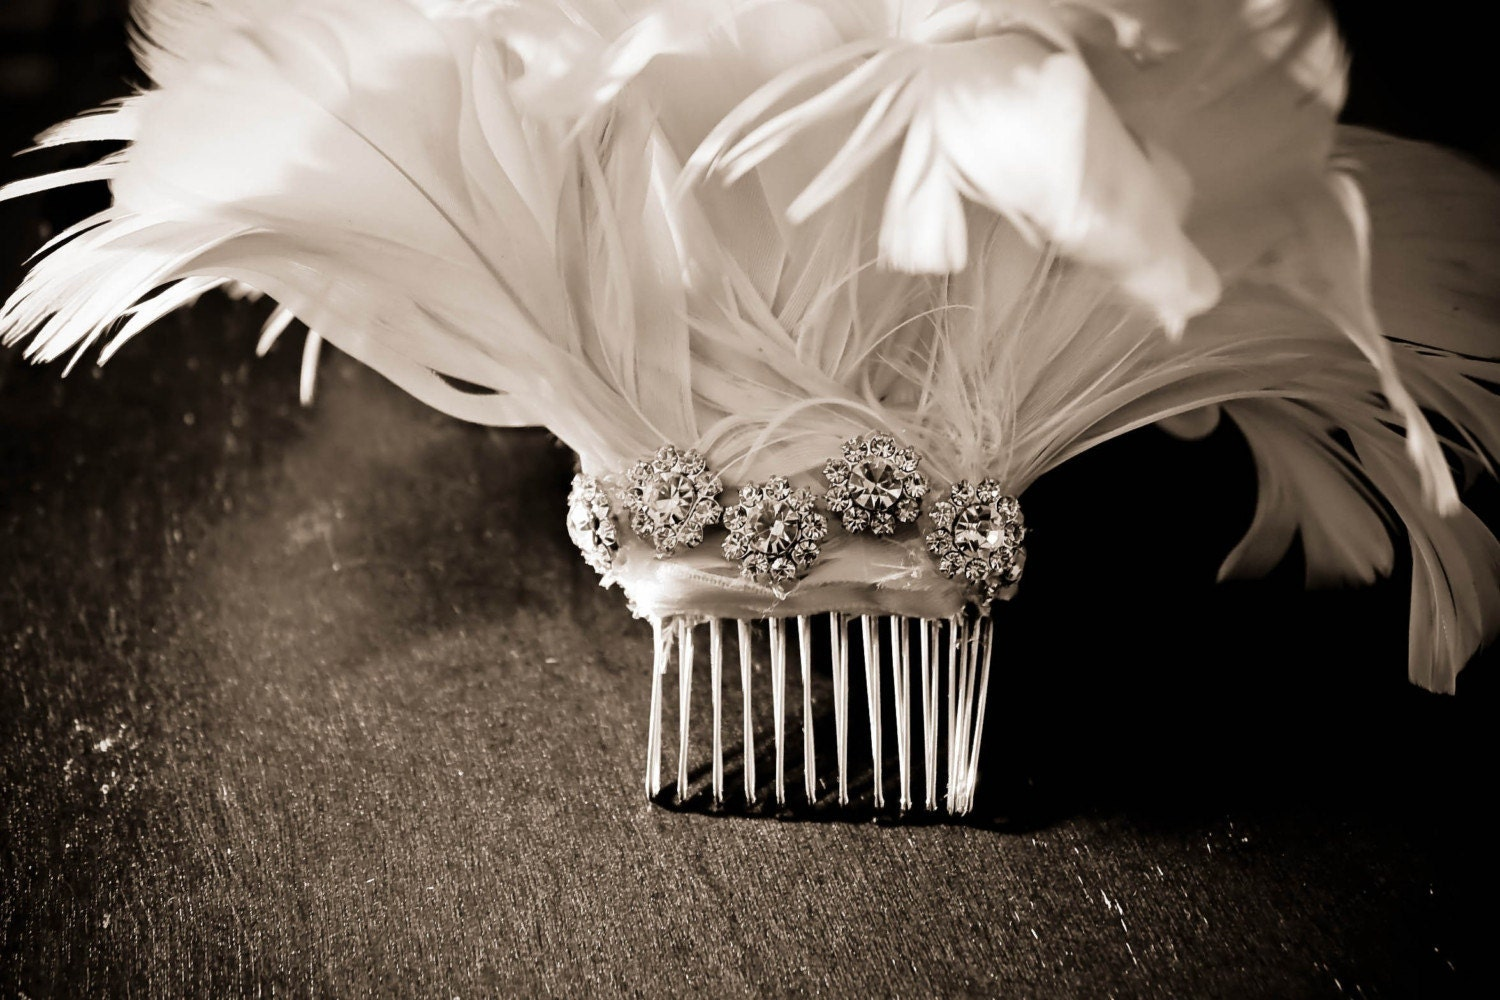 Fallon, a fascinator feather flowers drenched in vintage Swarovski crystals